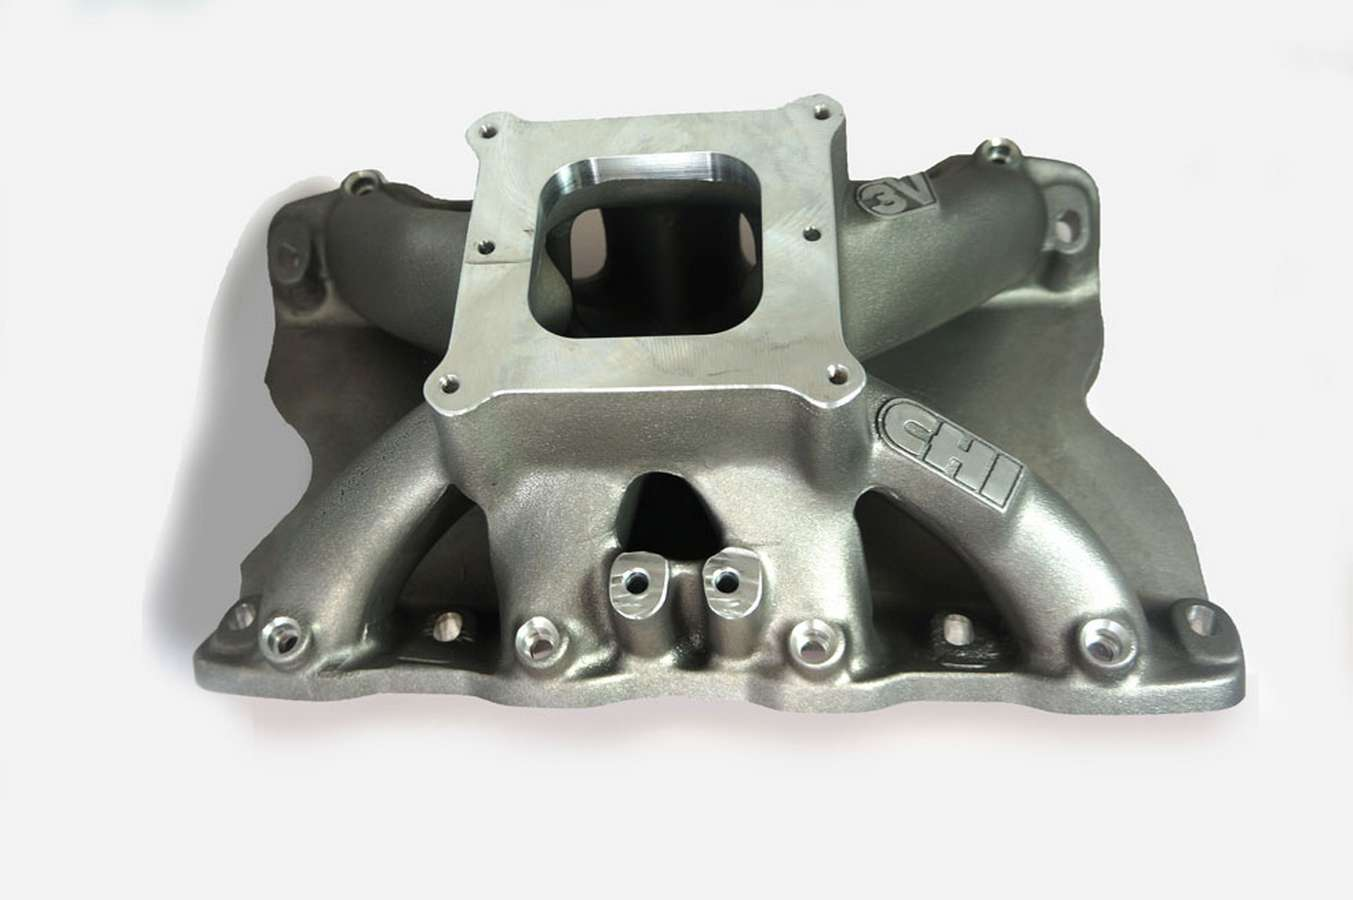 Cylinder Head Innovations INT3V208D9.2C Intake Manifold, 3V, Dominator Flange, 9.200 in Deck Height, Aluminum, Natural, Ford Cleveland / Modified, Each